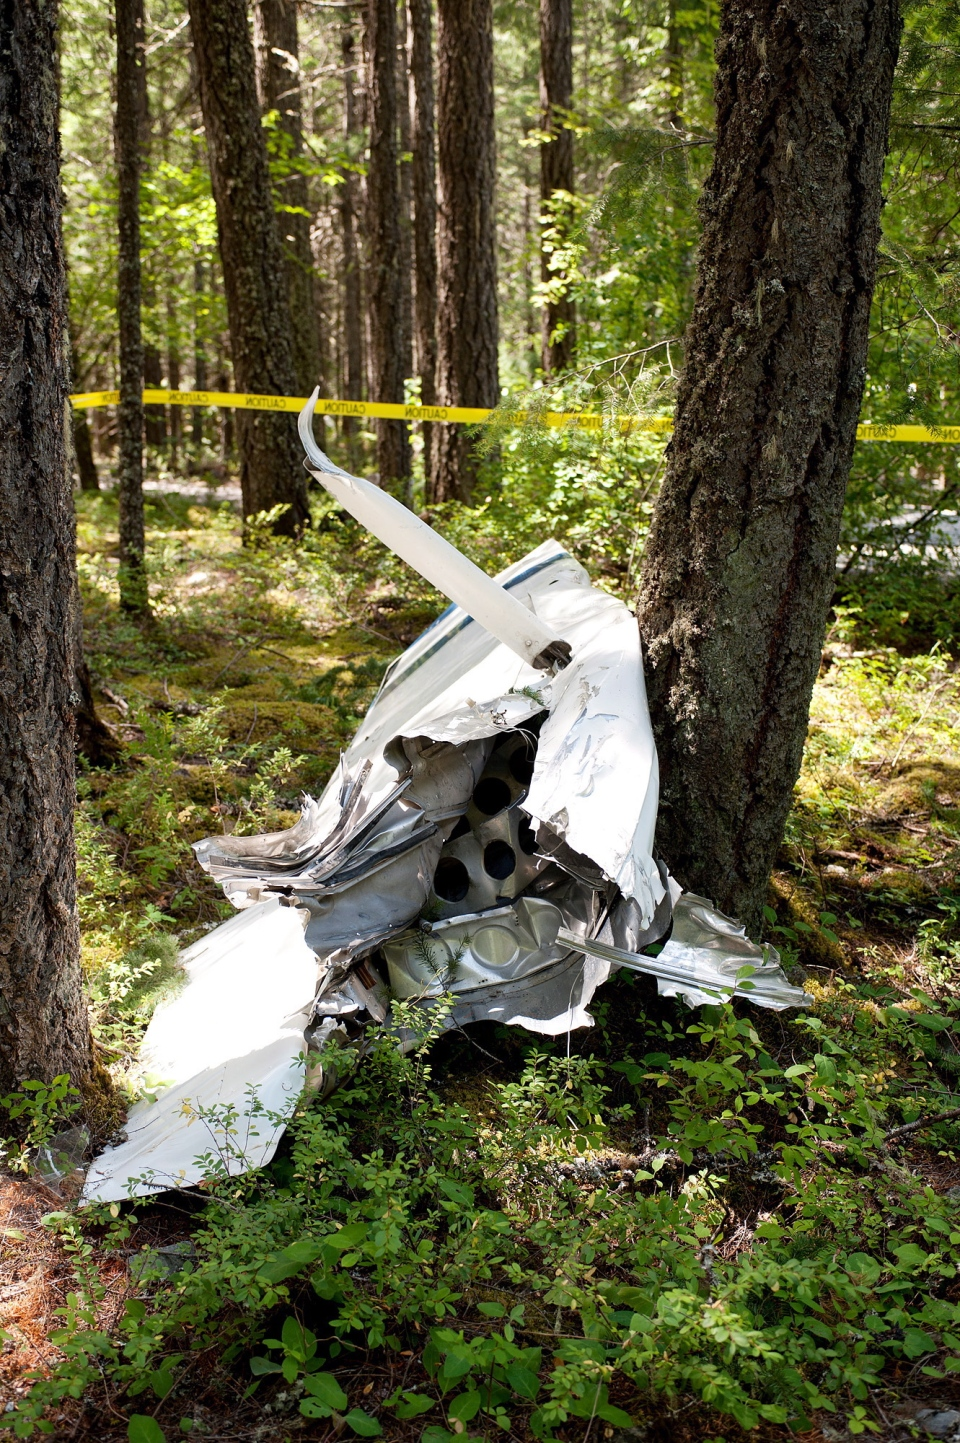 The severed wing of a Cessna 150 lies near the parking lot of Narin Falls Provincial Park, near Pemberton, about 50 kilometres north of Whistler, after a collision between it and a glider on Saturday, June 29, 2013.  (David Buzzard / THE CANADIAN PRESS)